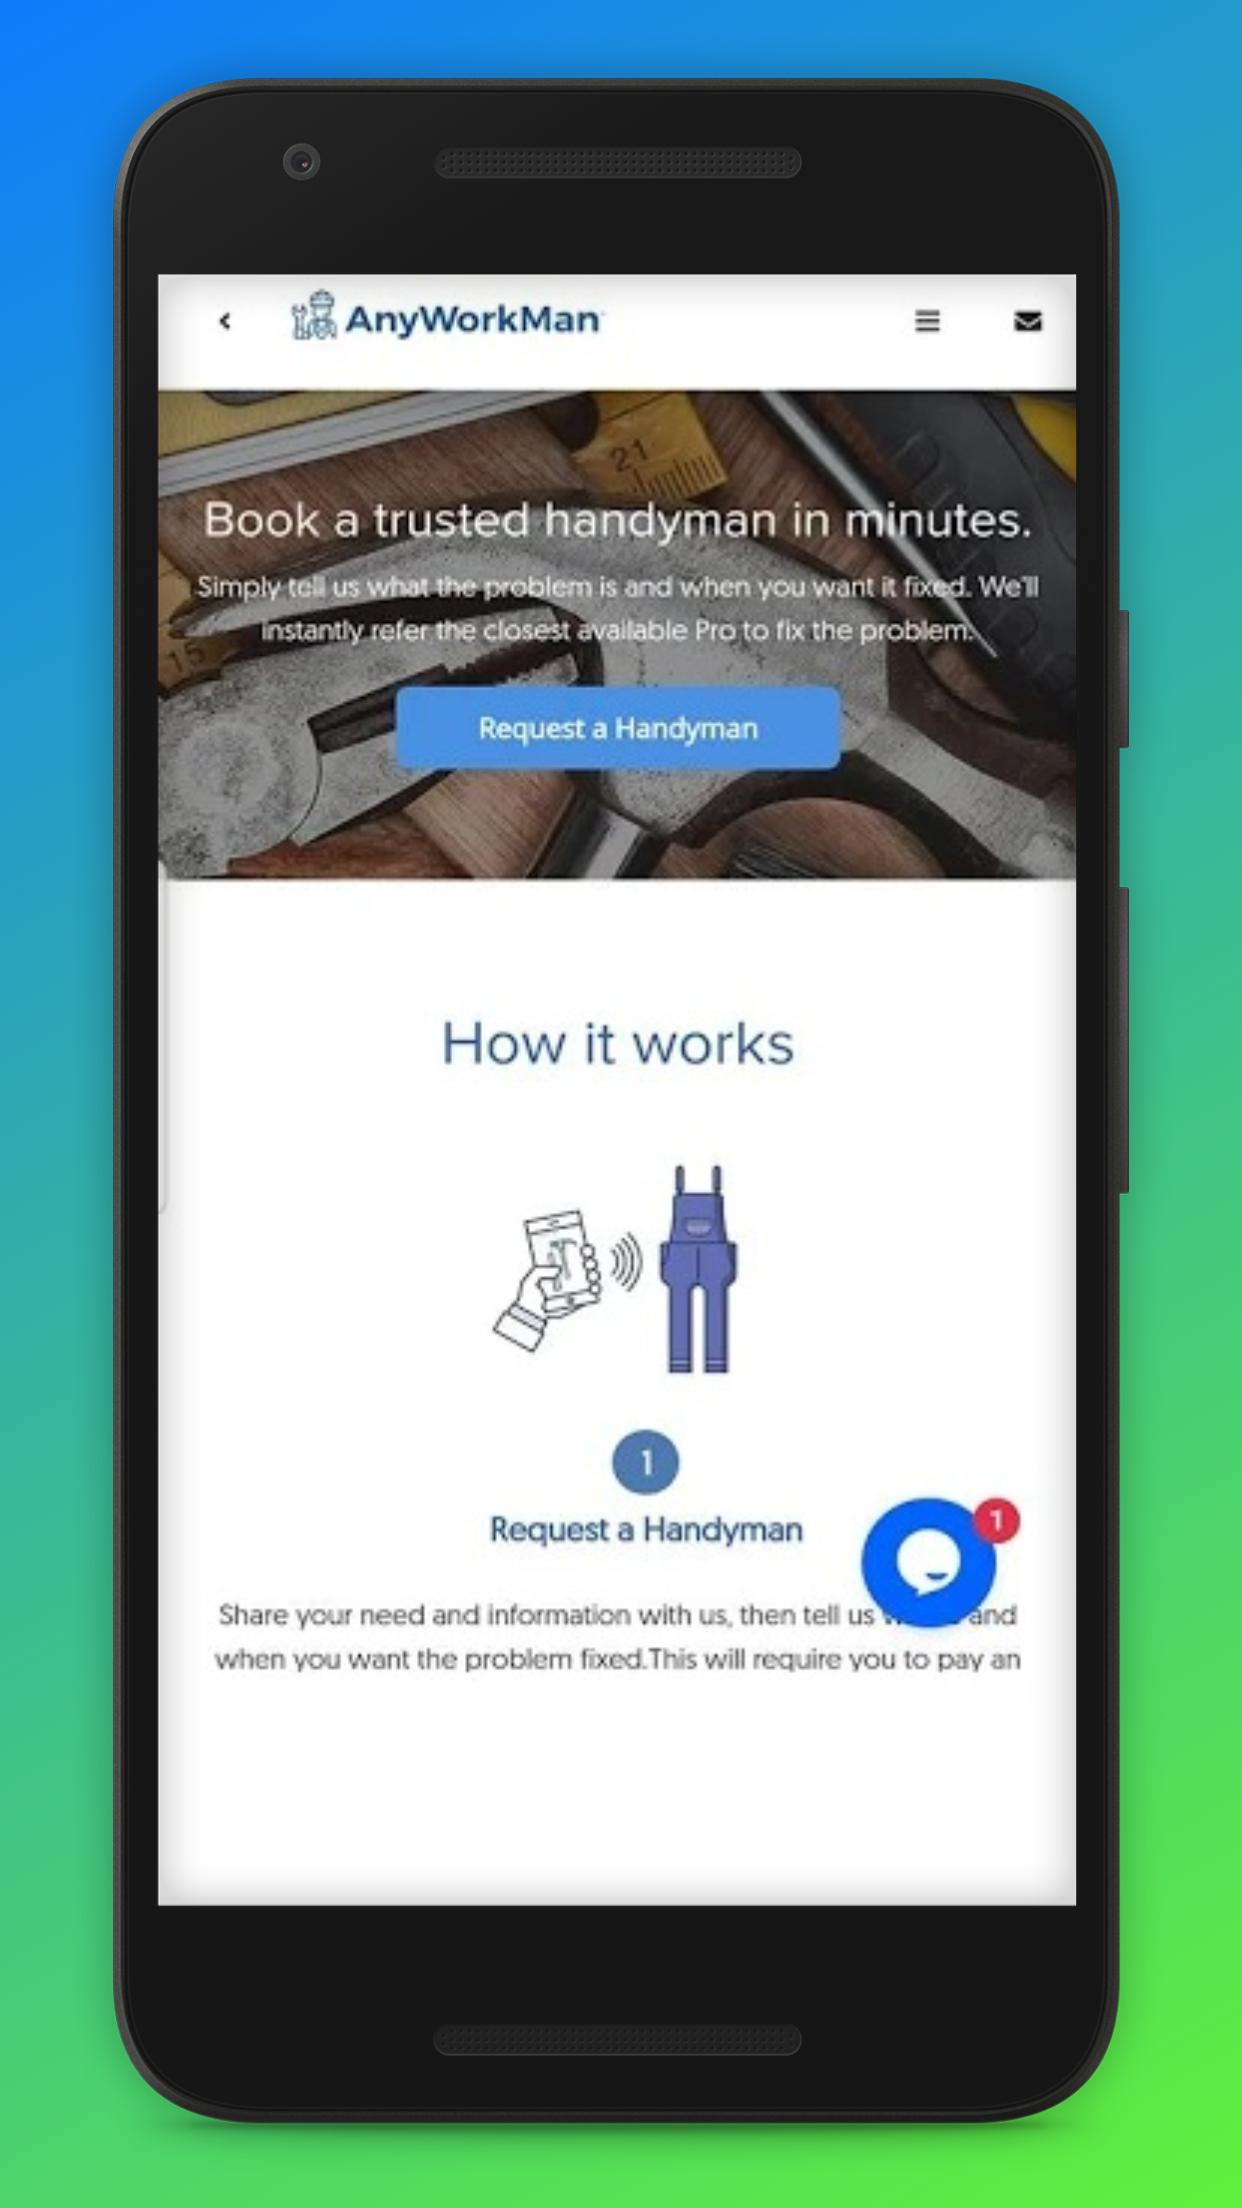 Anyworkman Handyman App for Android - APK Download